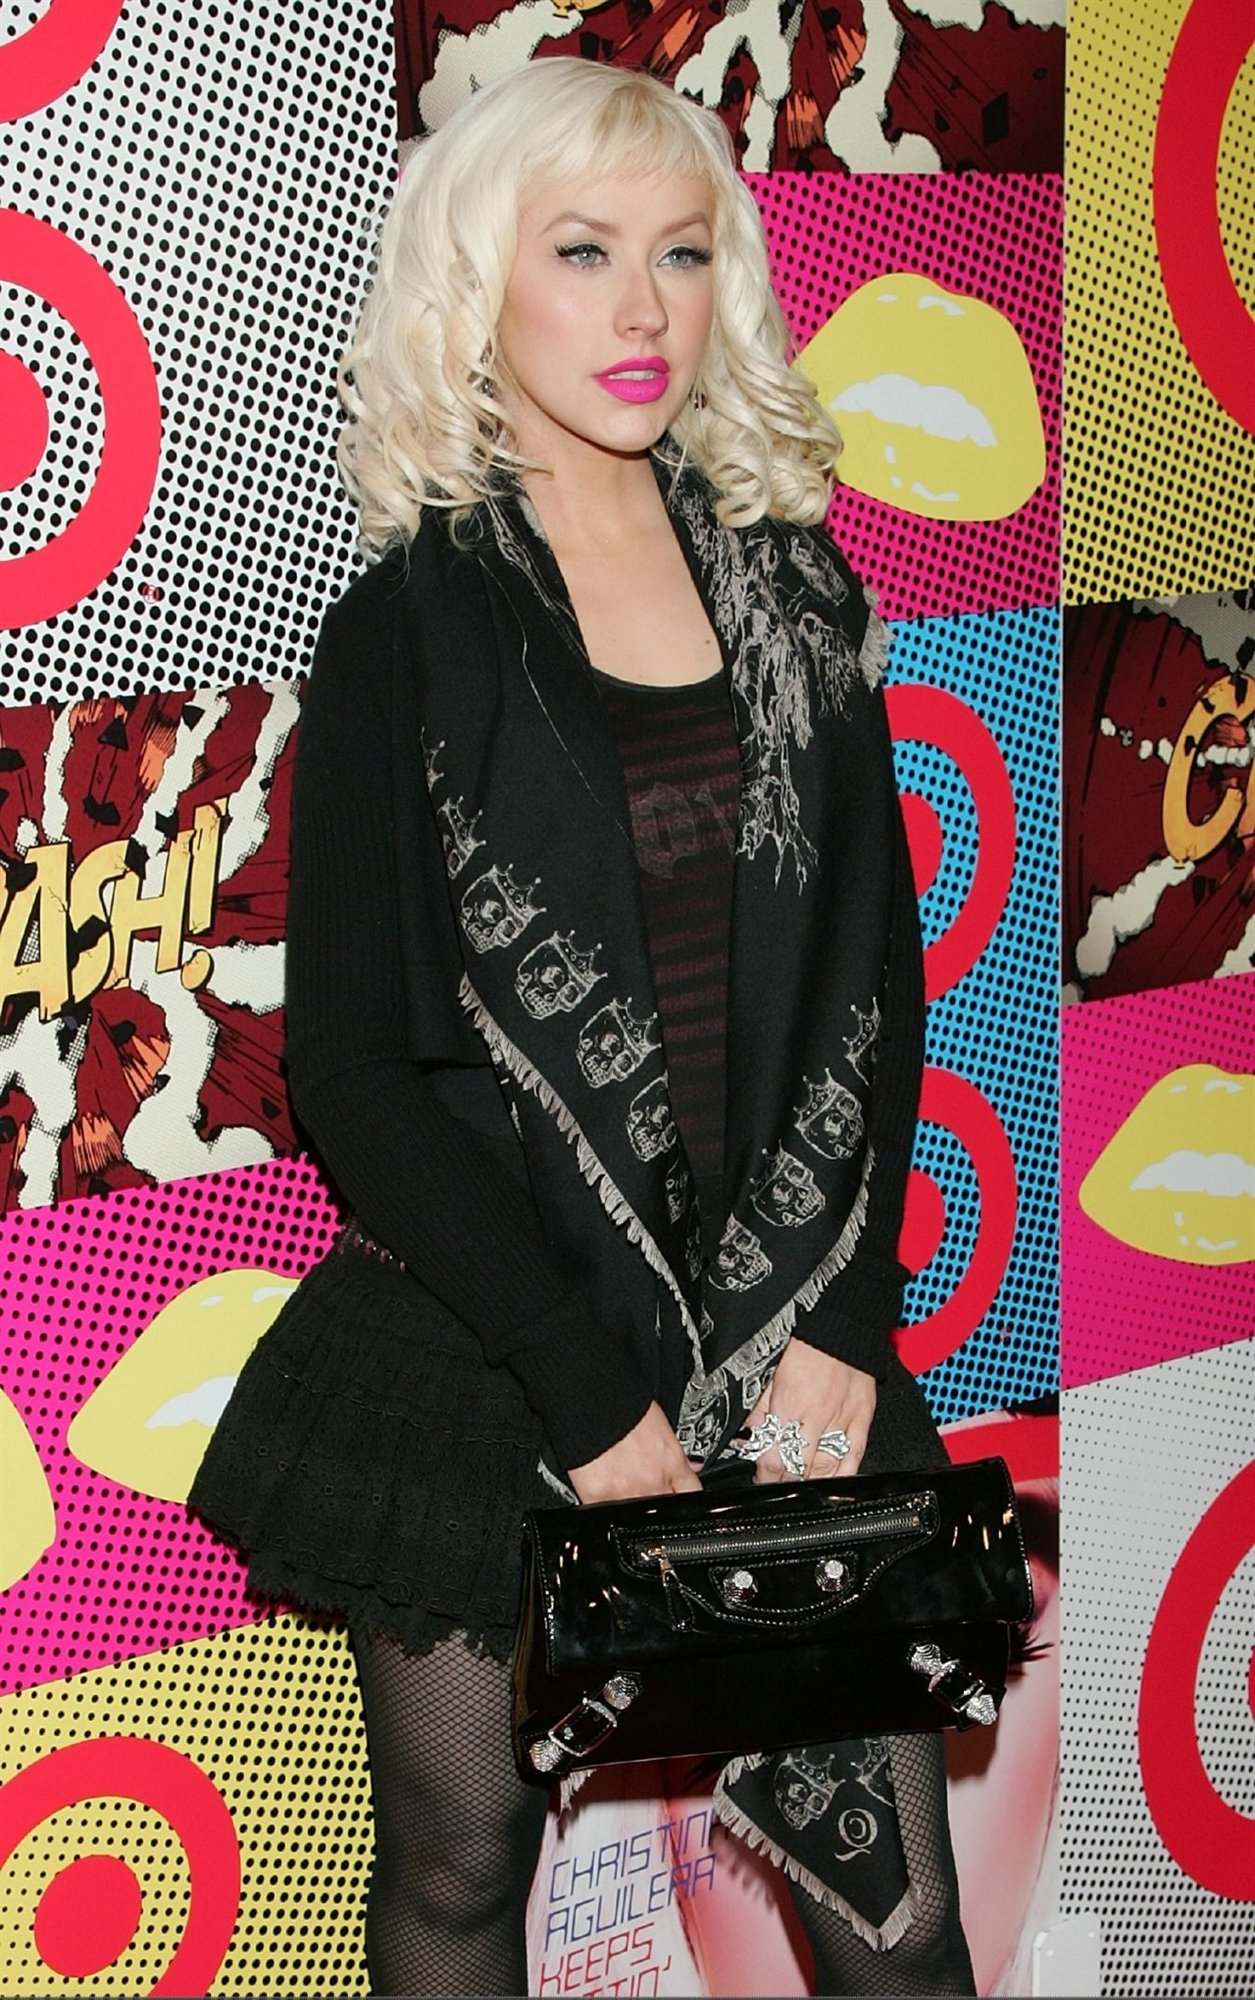 Christina Aguilera leaked wallpapers